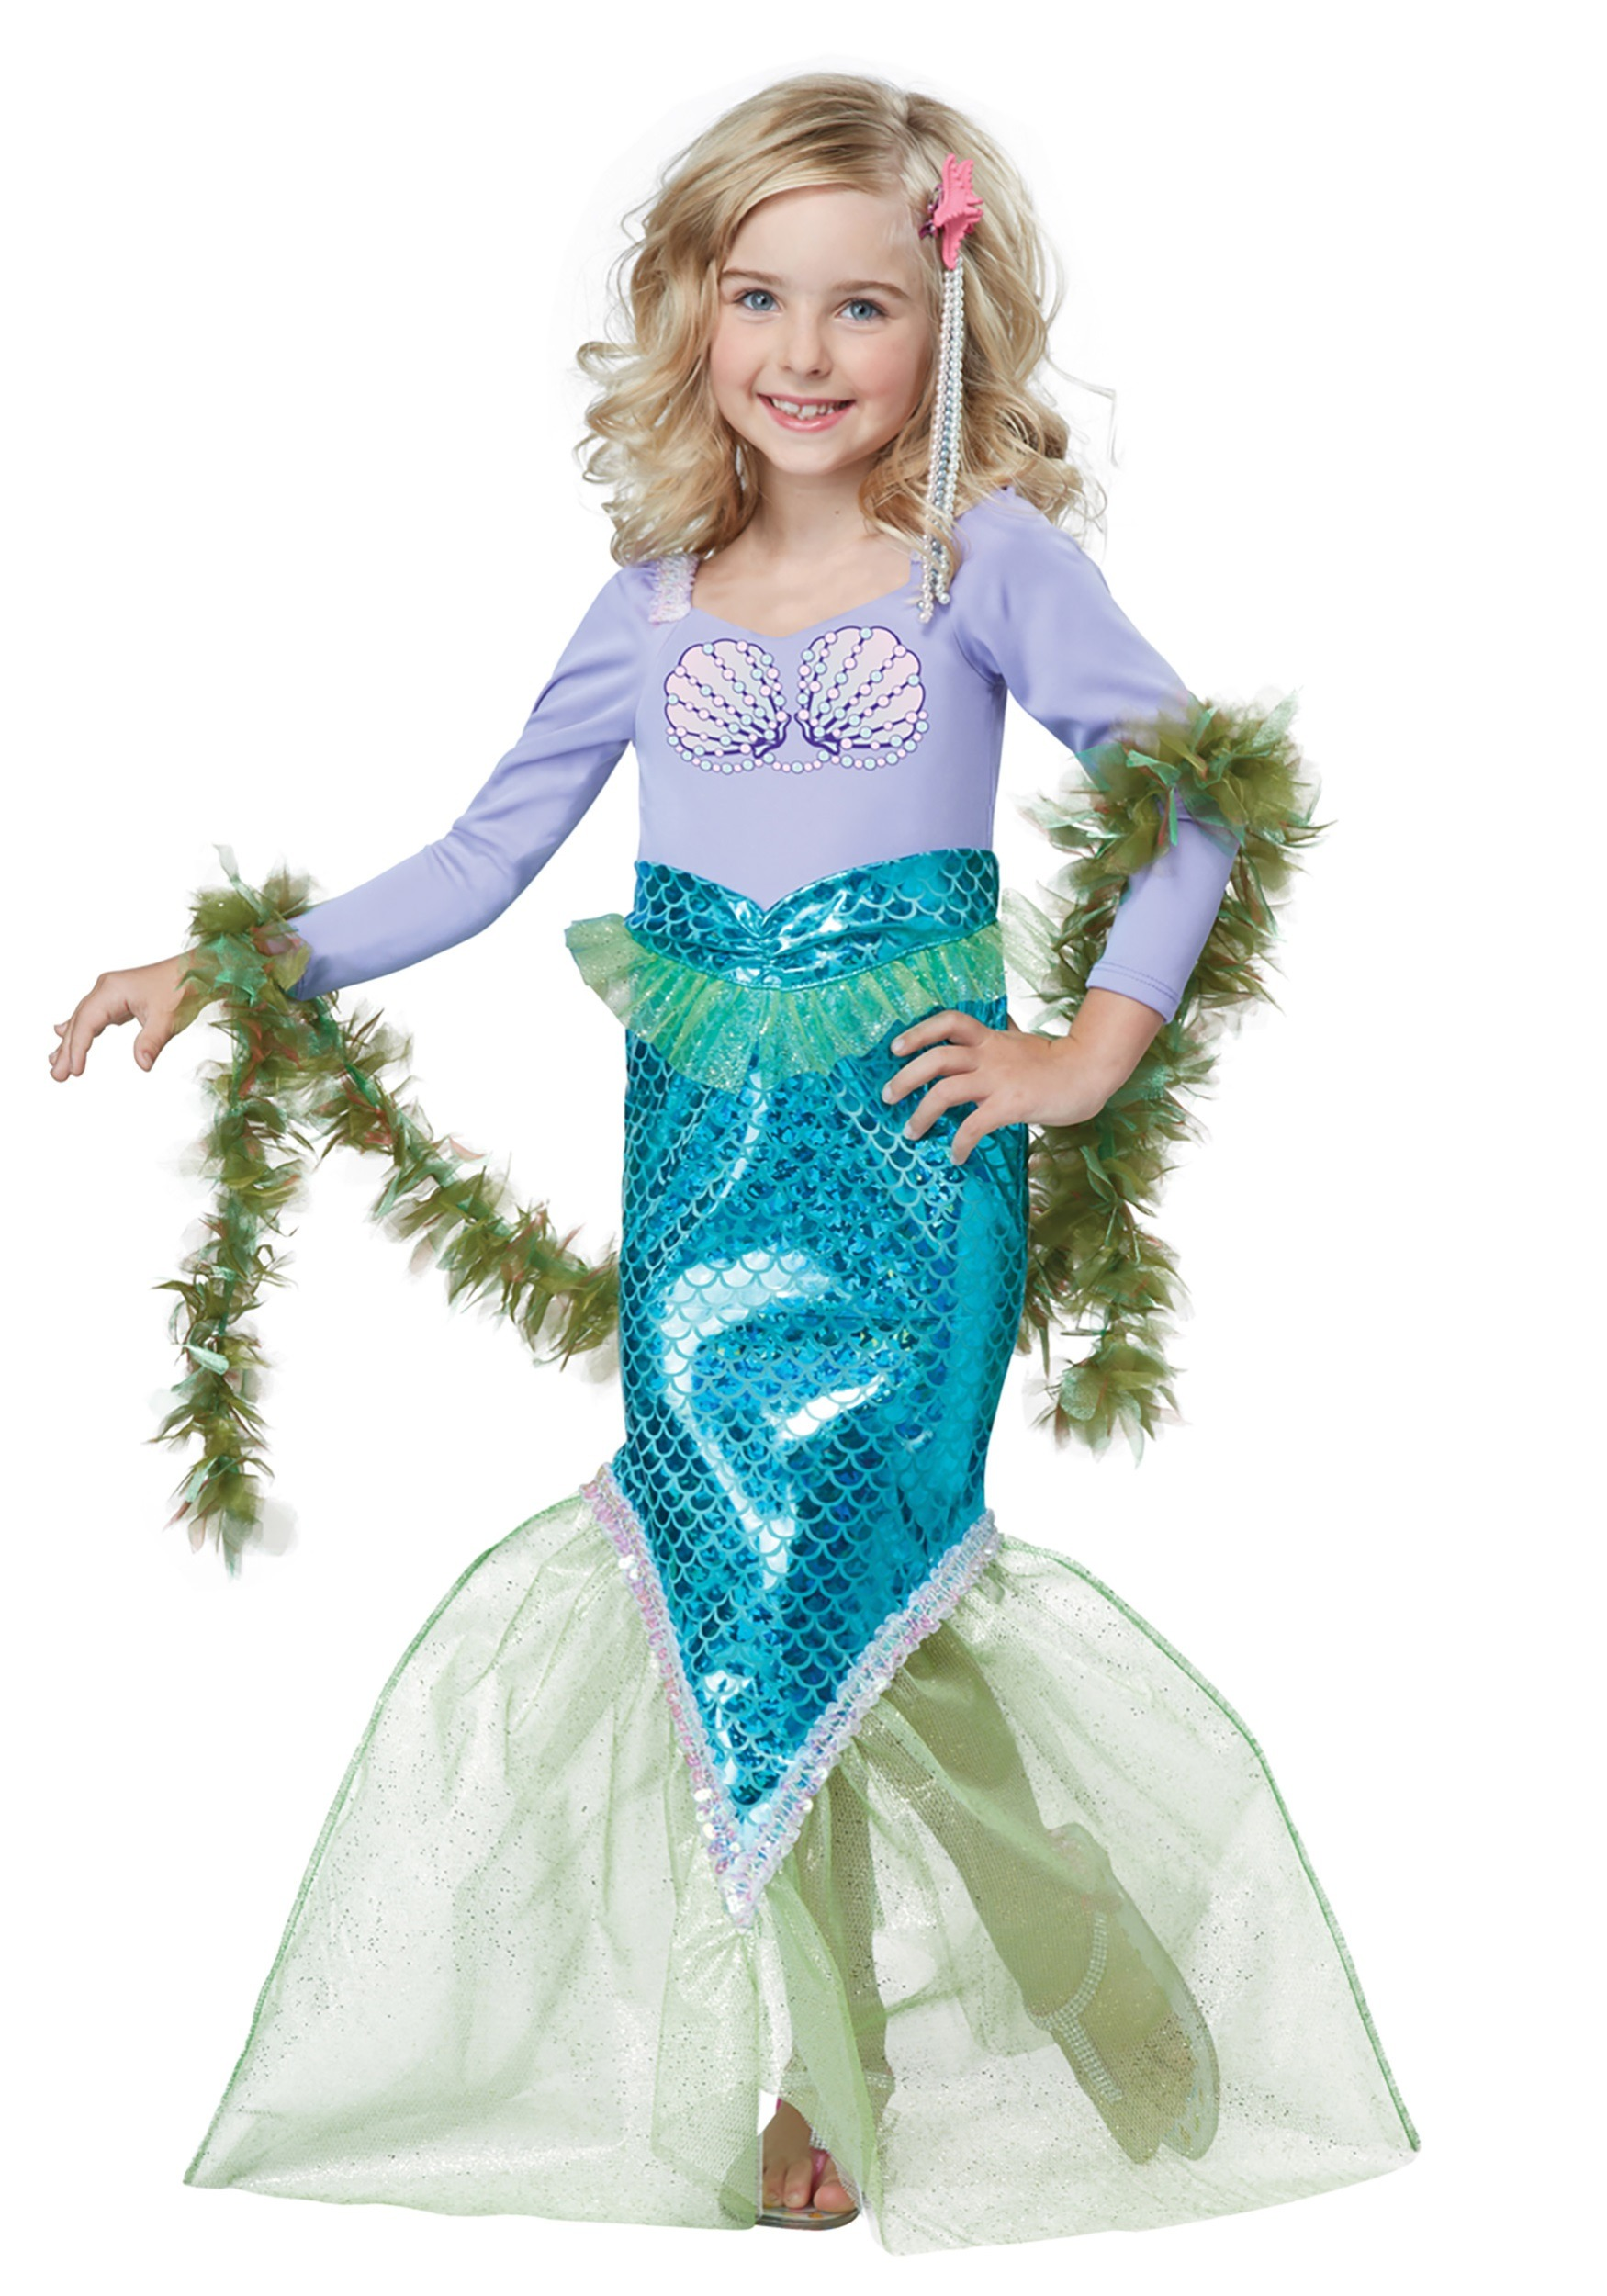 sc 1 st  Halloween Costumes : toddler mermaid halloween costume  - Germanpascual.Com